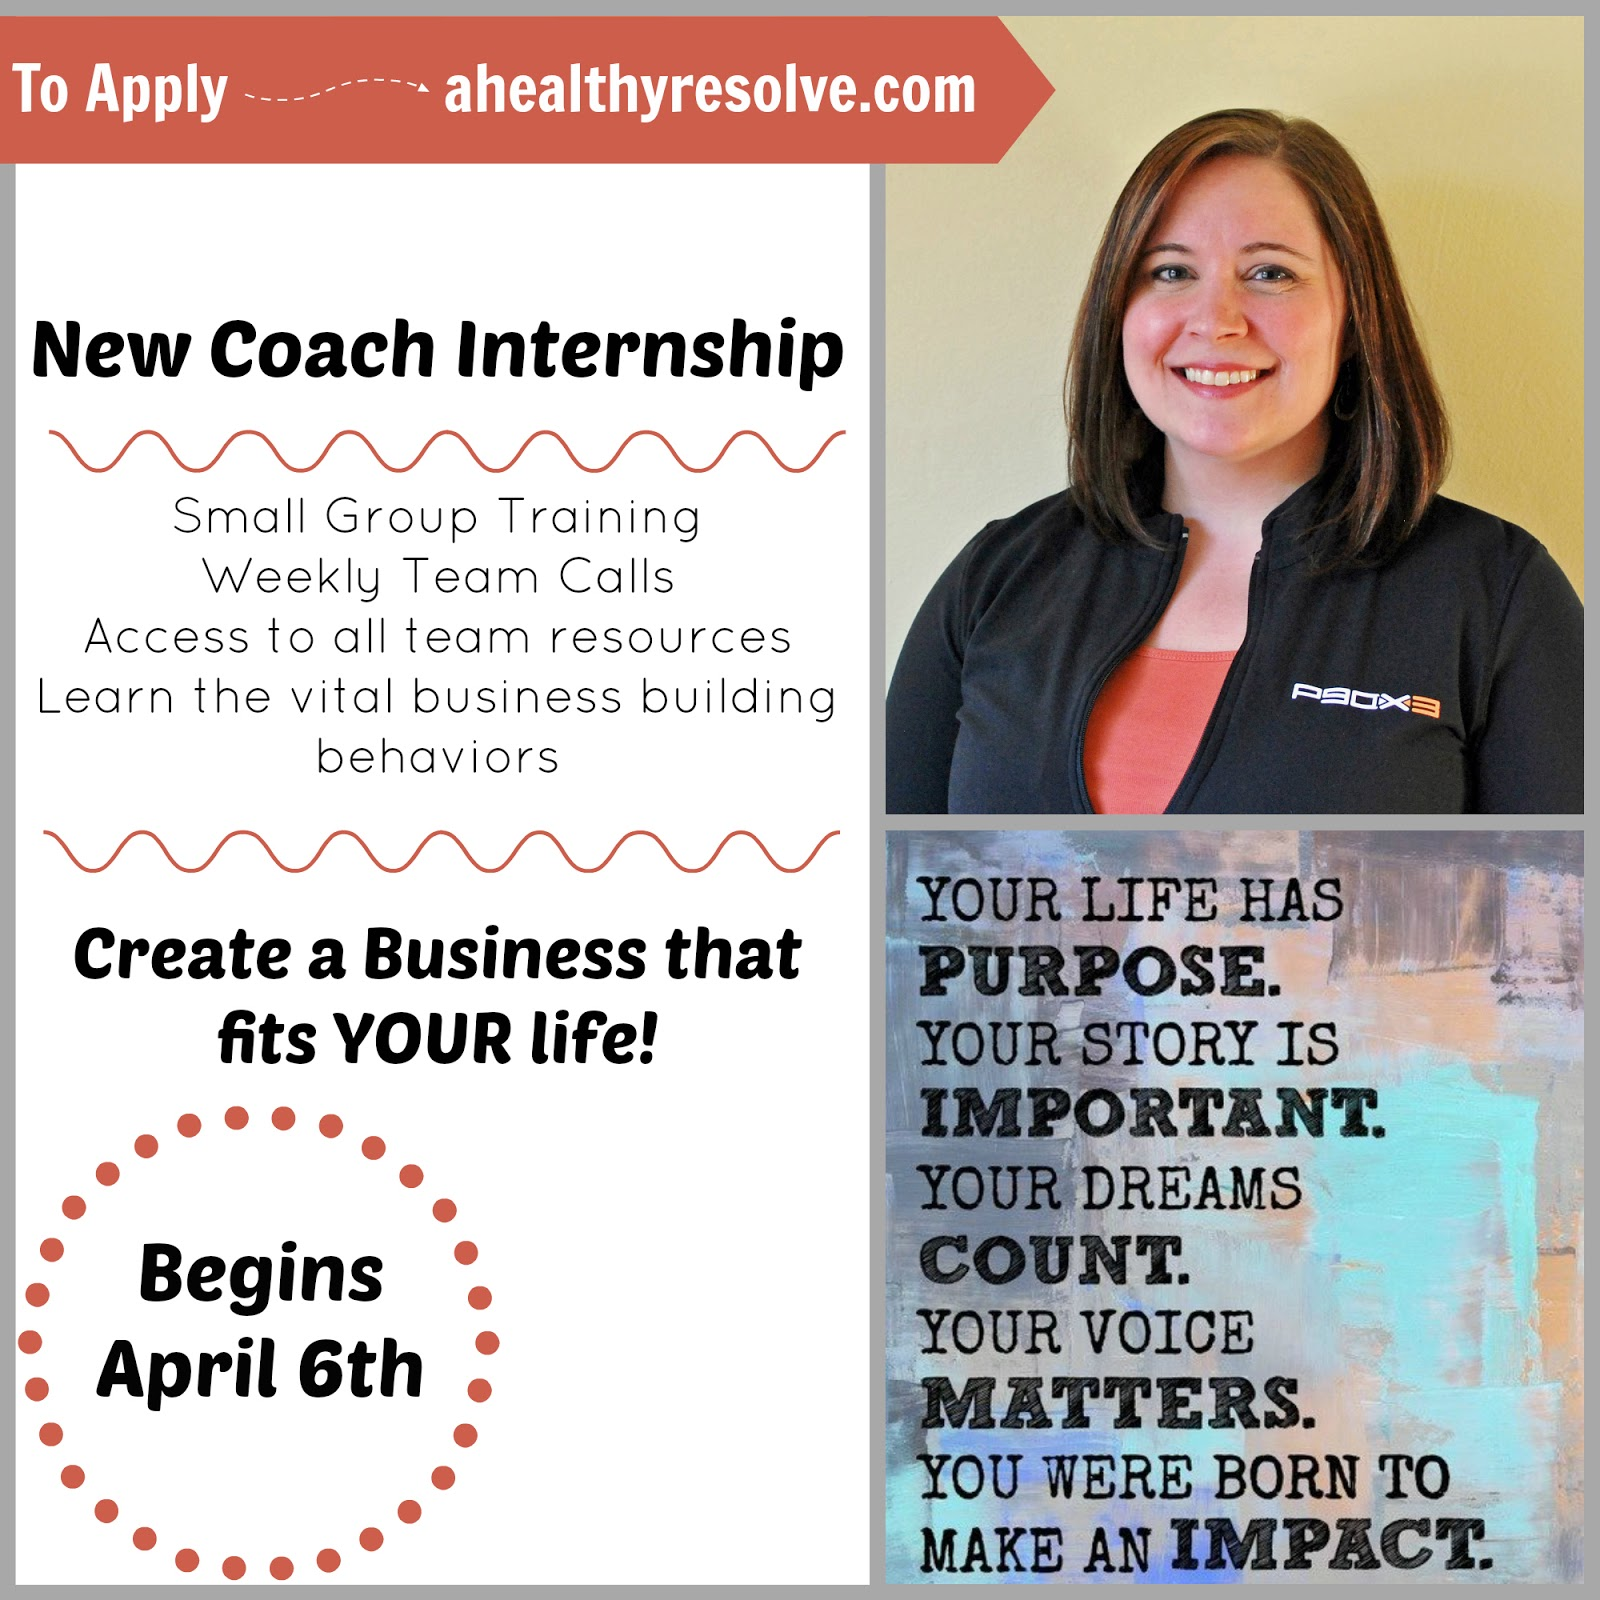 Join my next New Coach Internship program. I will give you the tools you need to succeed! - www.ahealthyresolve.com